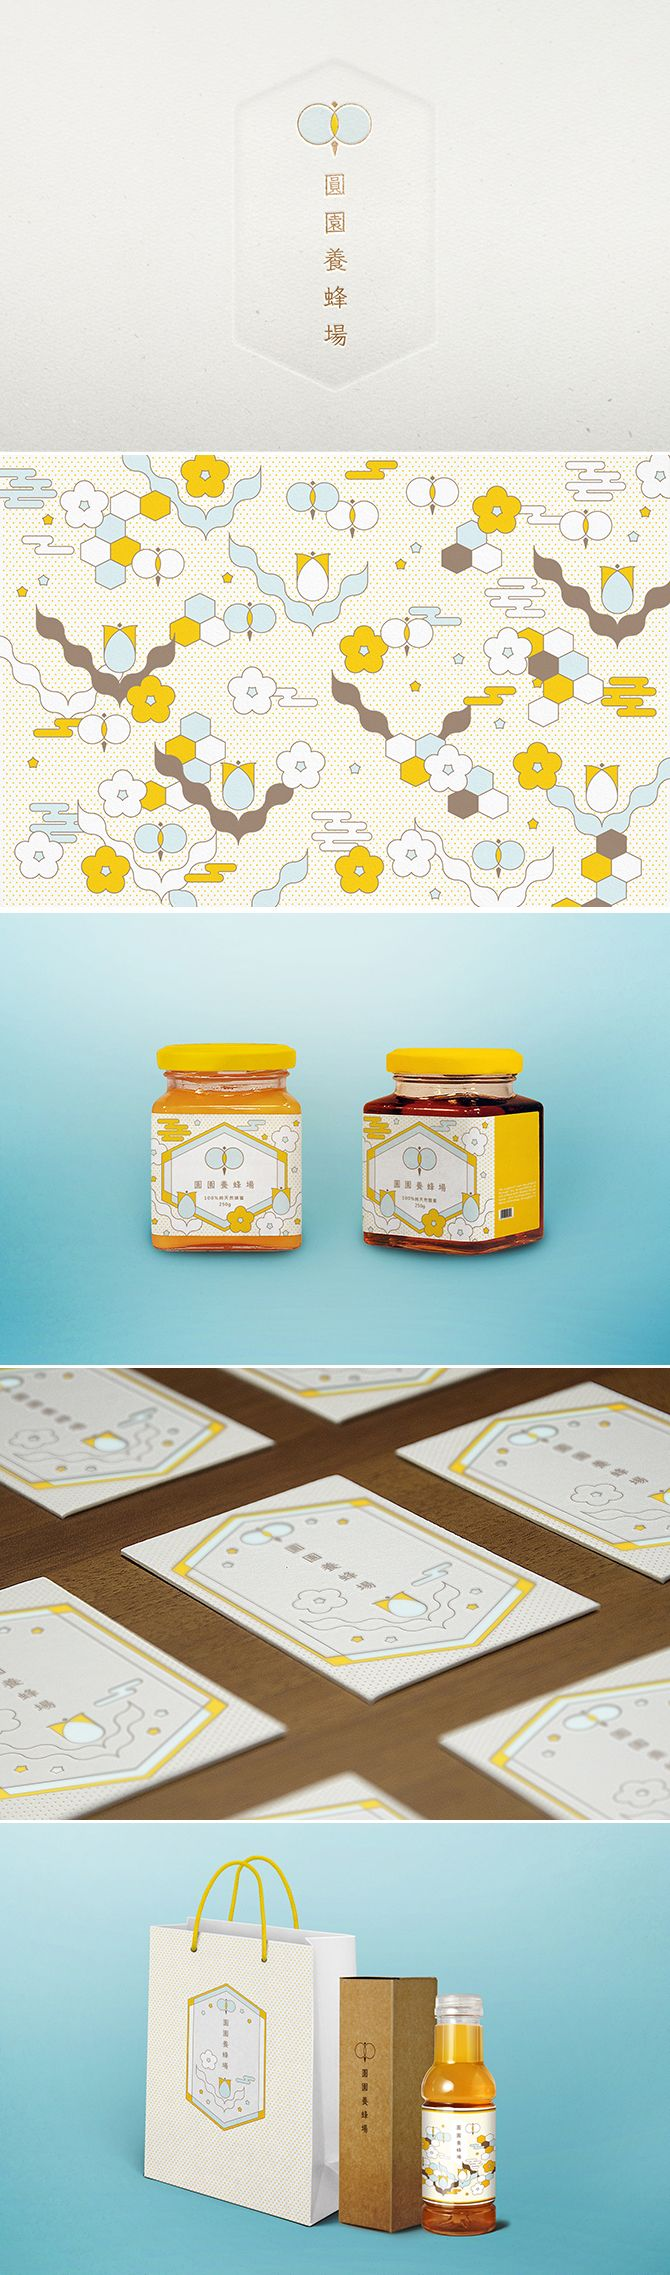 Honey design from Taiwan.